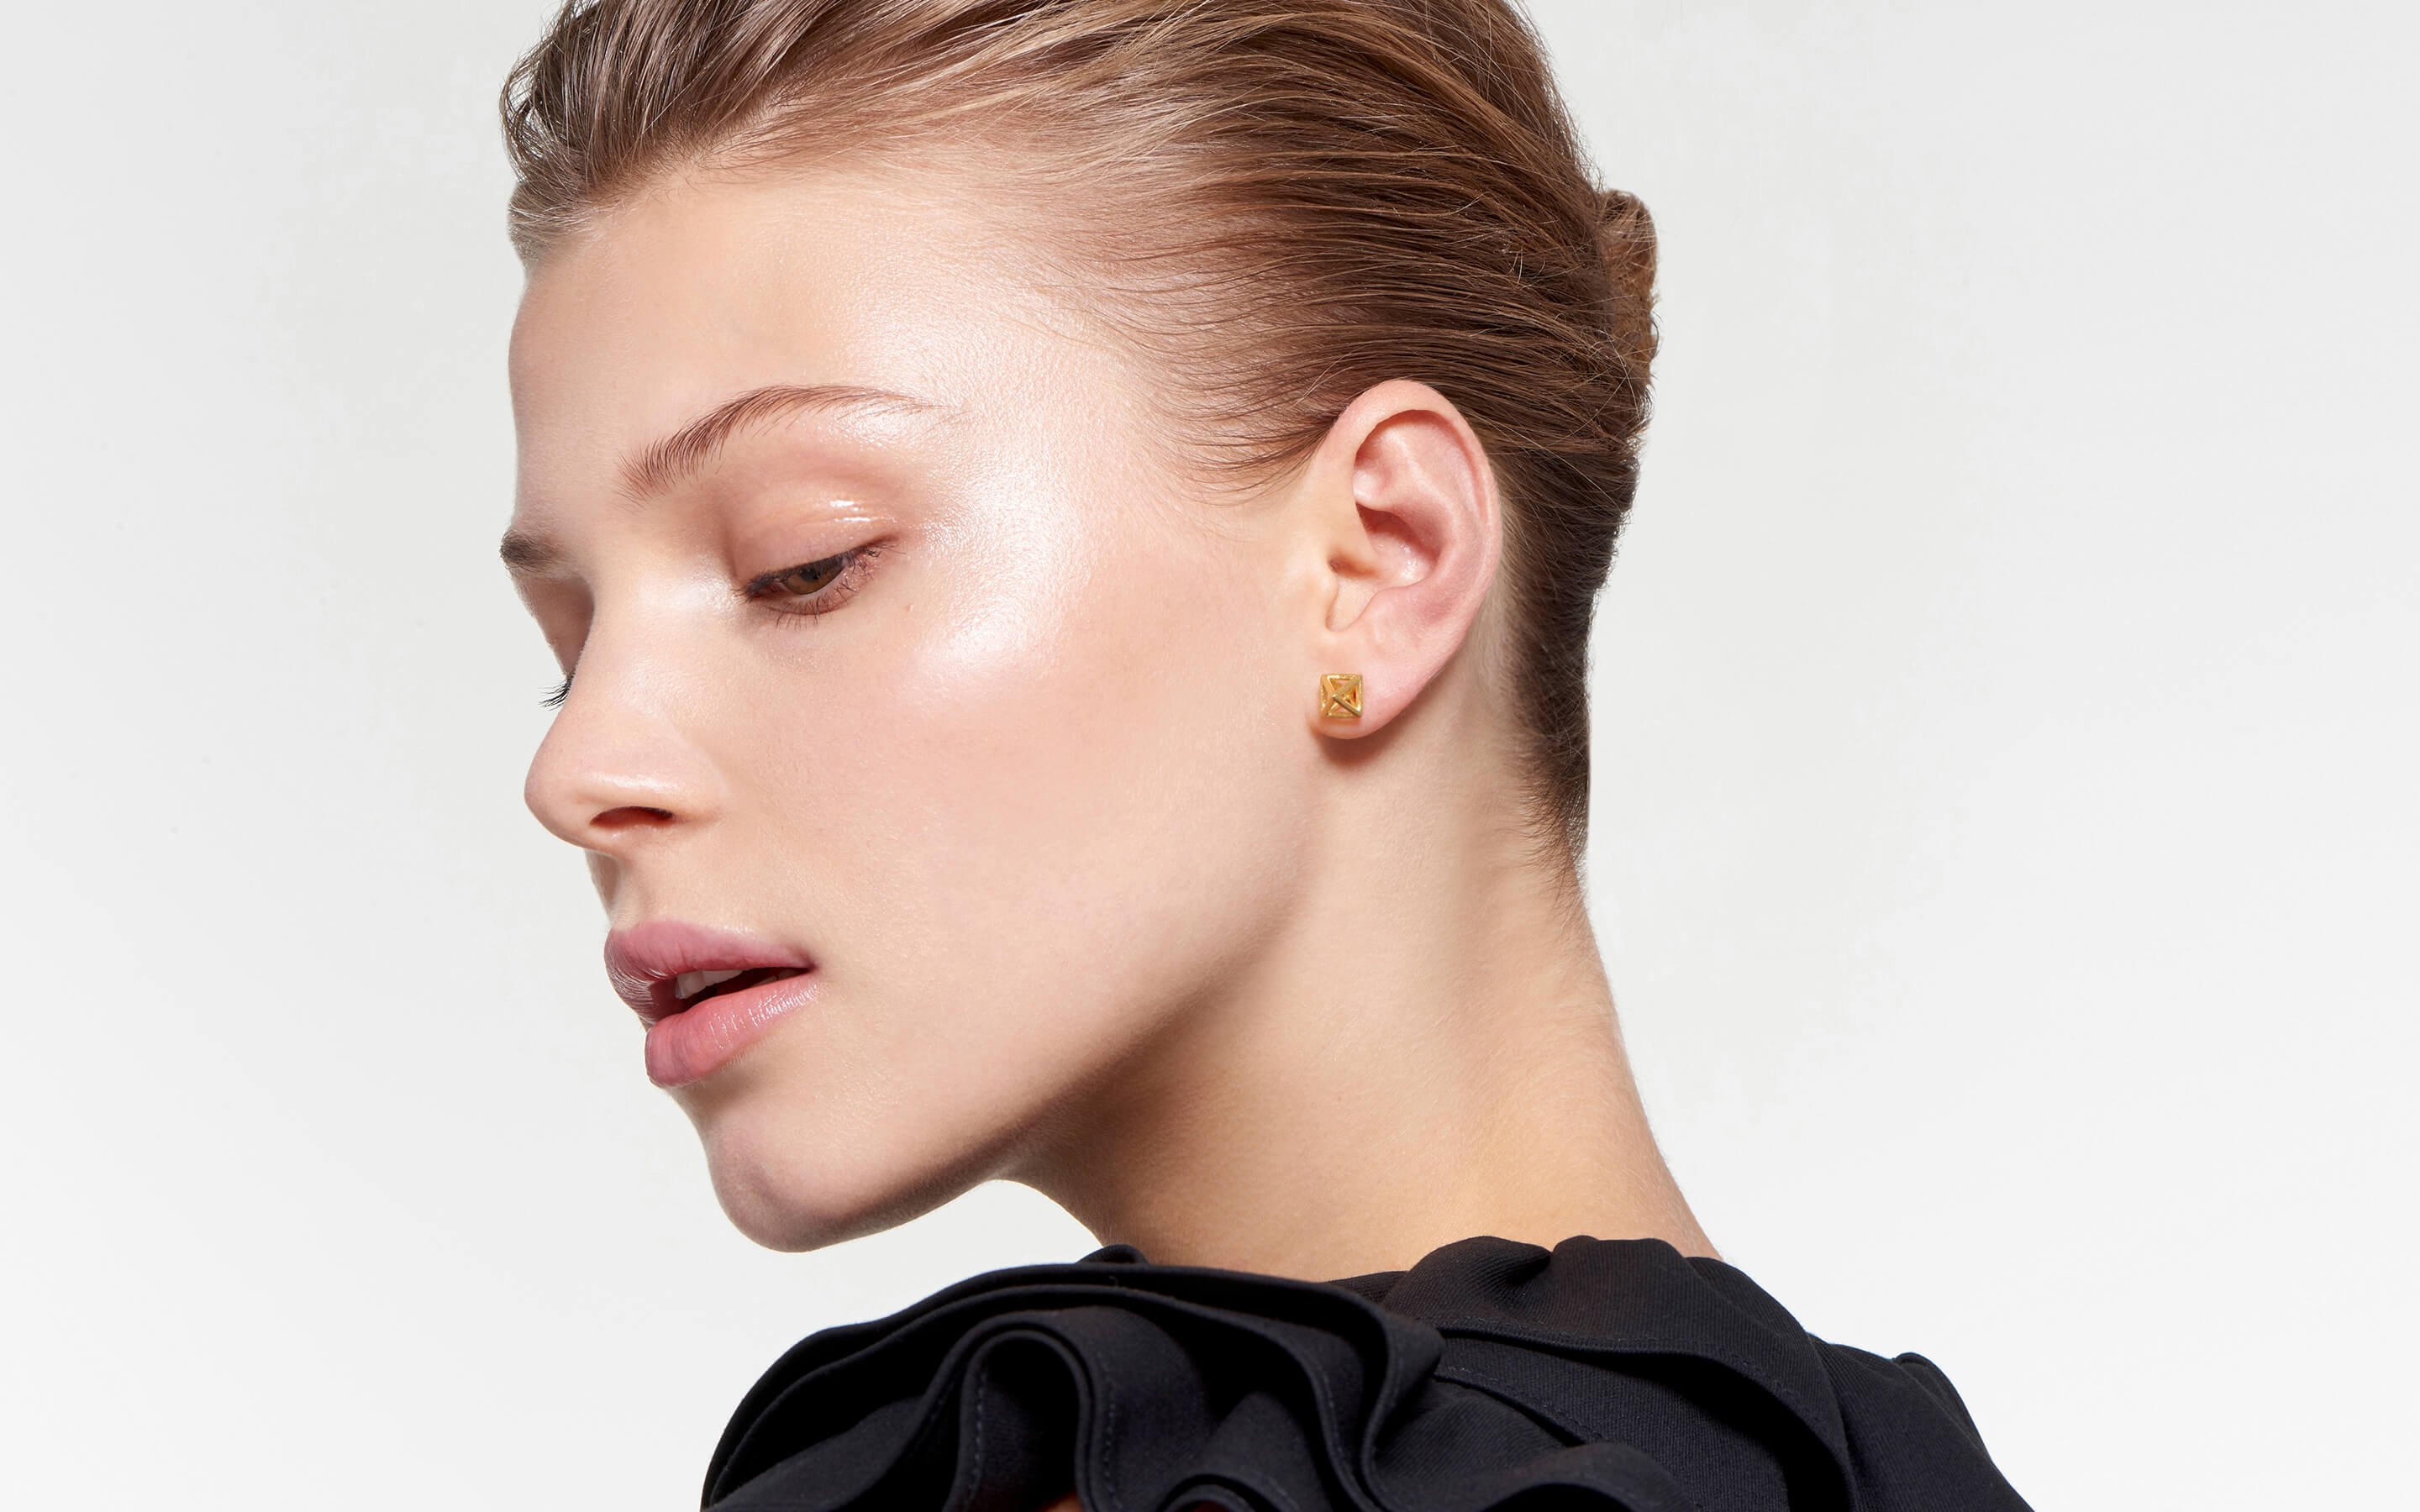 22 karat gold stud earrings with geometric cages in satin finish on stunning model